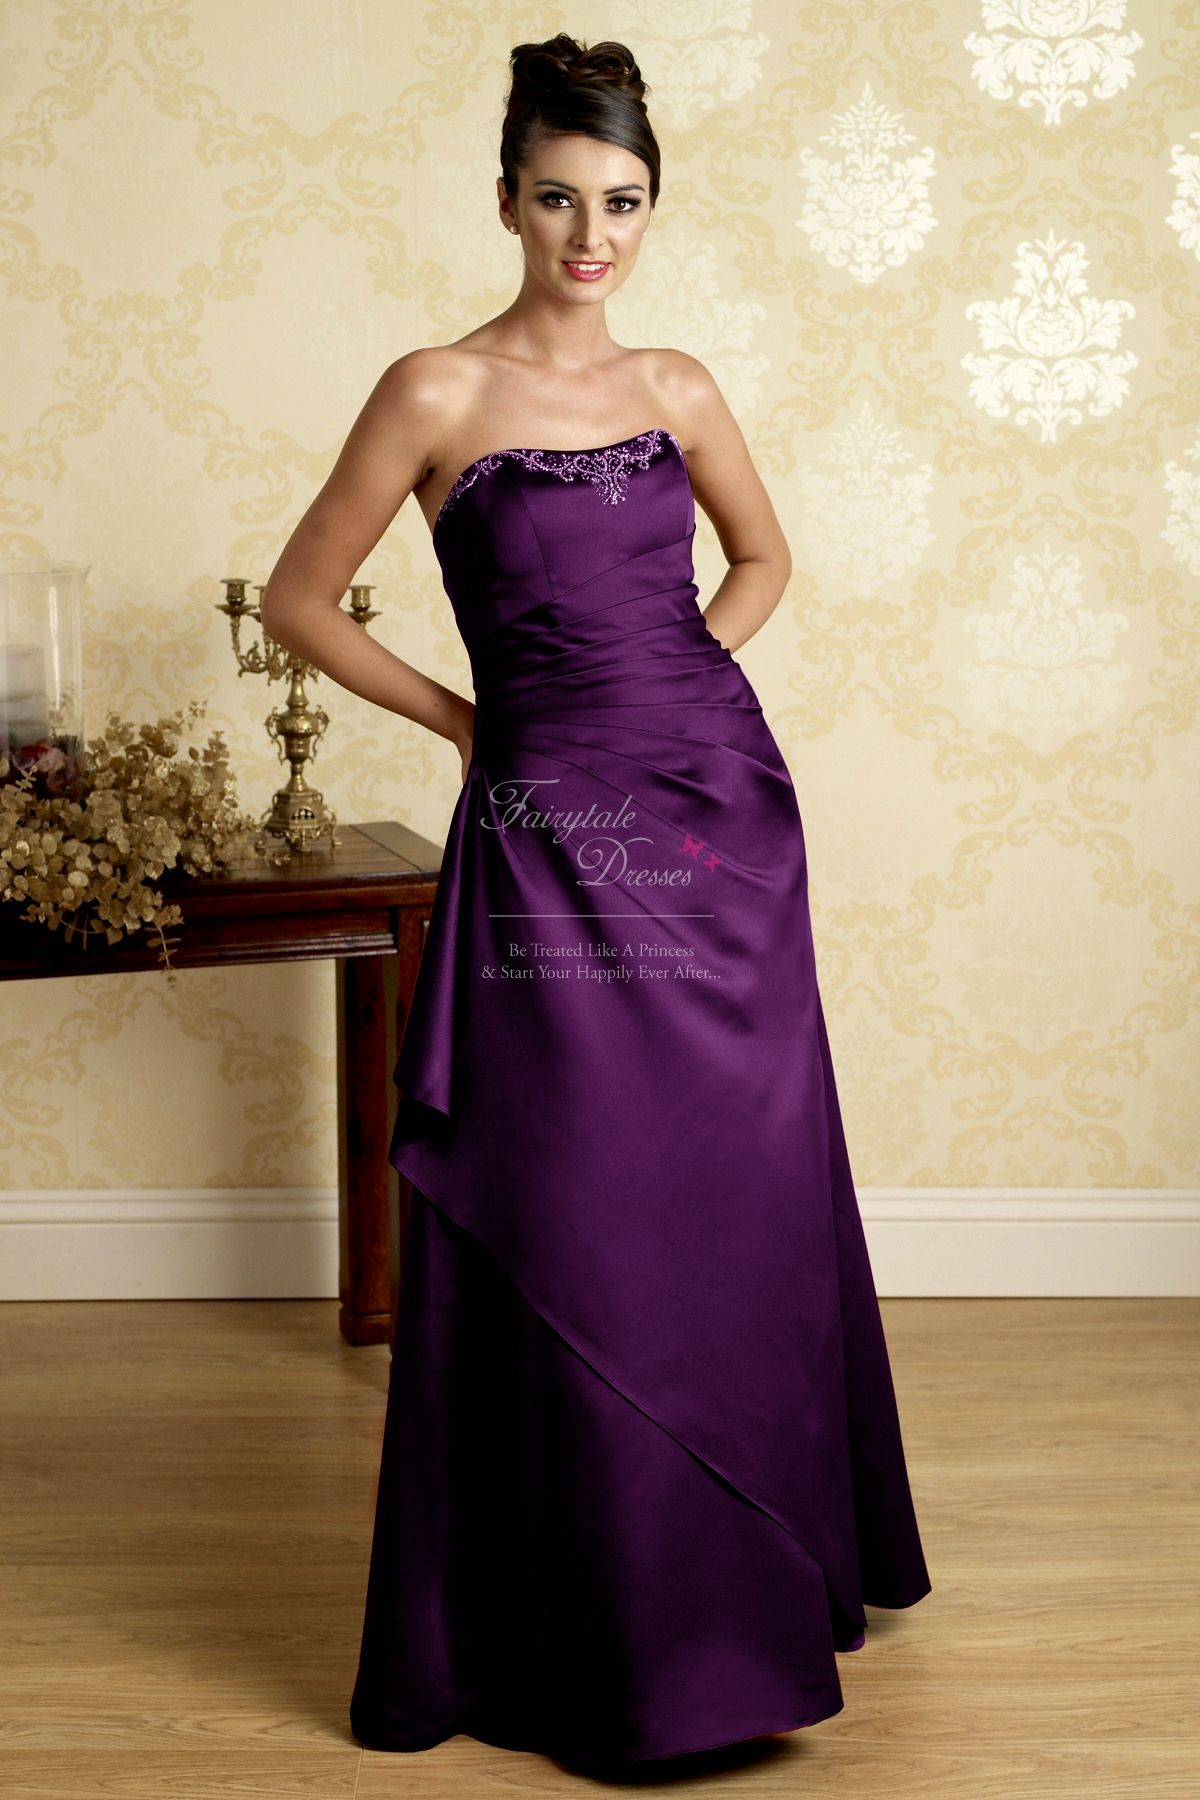 Cadburys bridesmaid outfit timeless wedding and fashion wedding cadburys long purple bridesmaid dressesbridesmaid ombrellifo Images